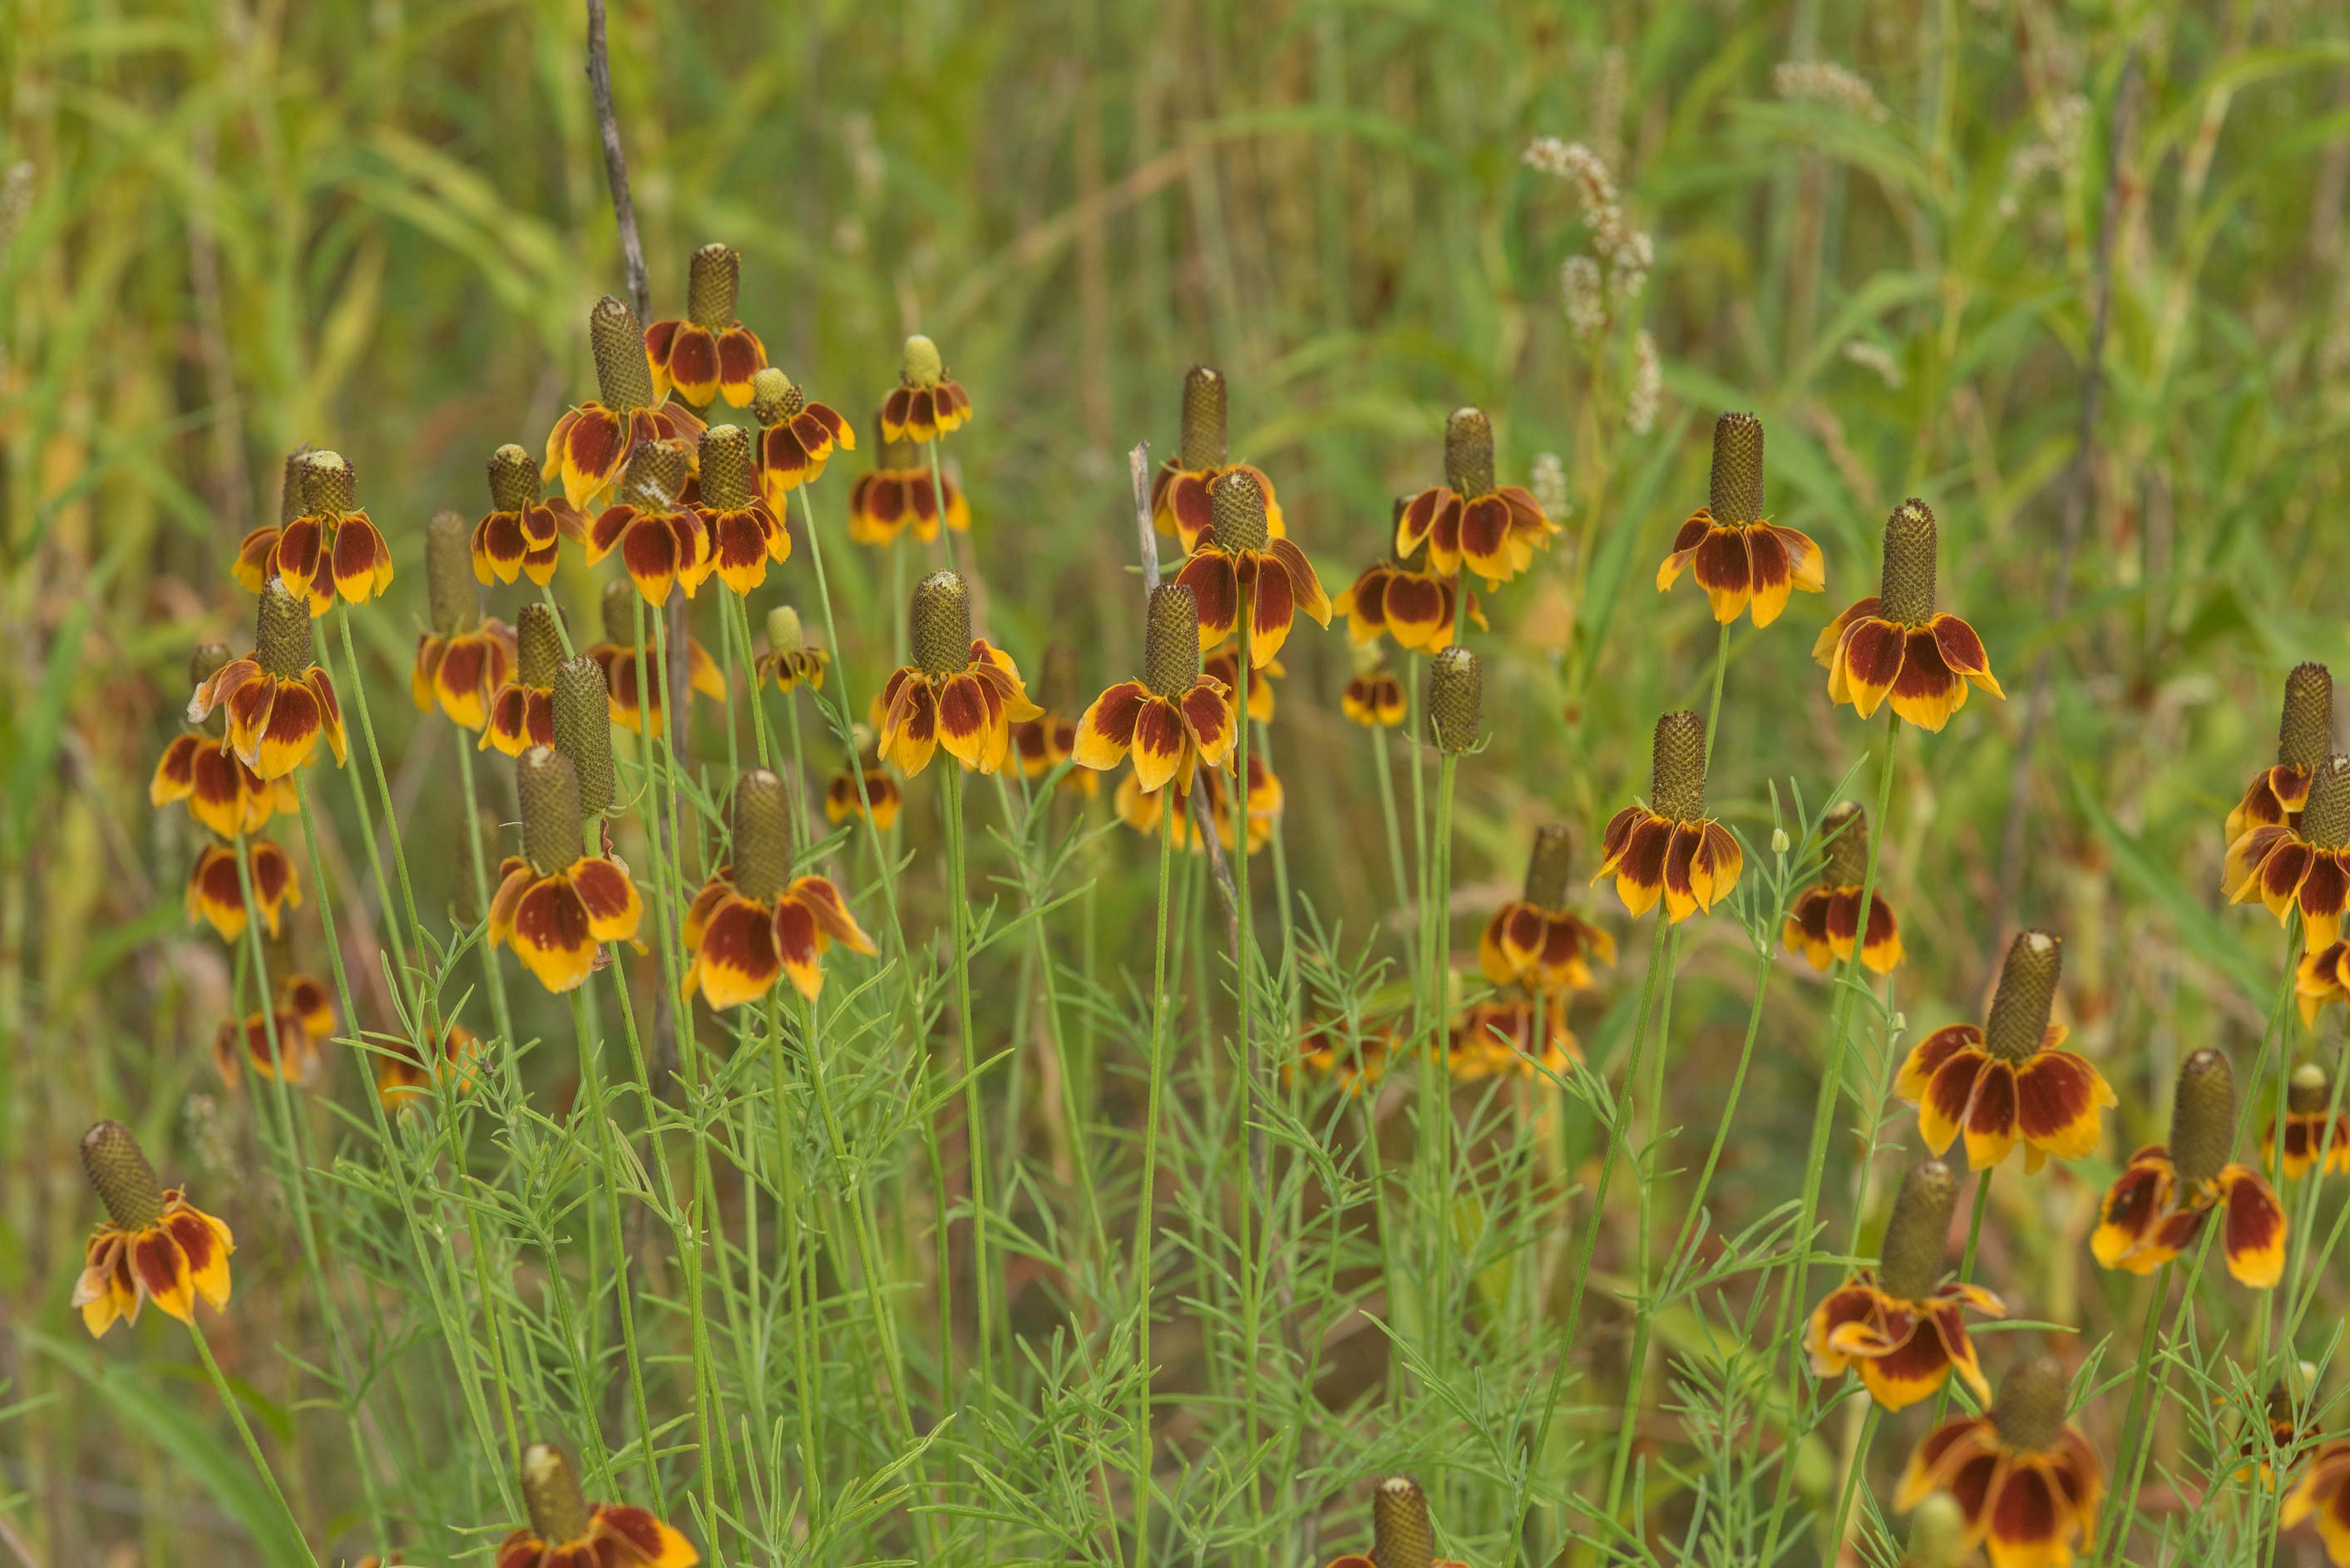 Mexican hat flowers (Ratibida columnifera) in...State Historic Site. Washington, Texas